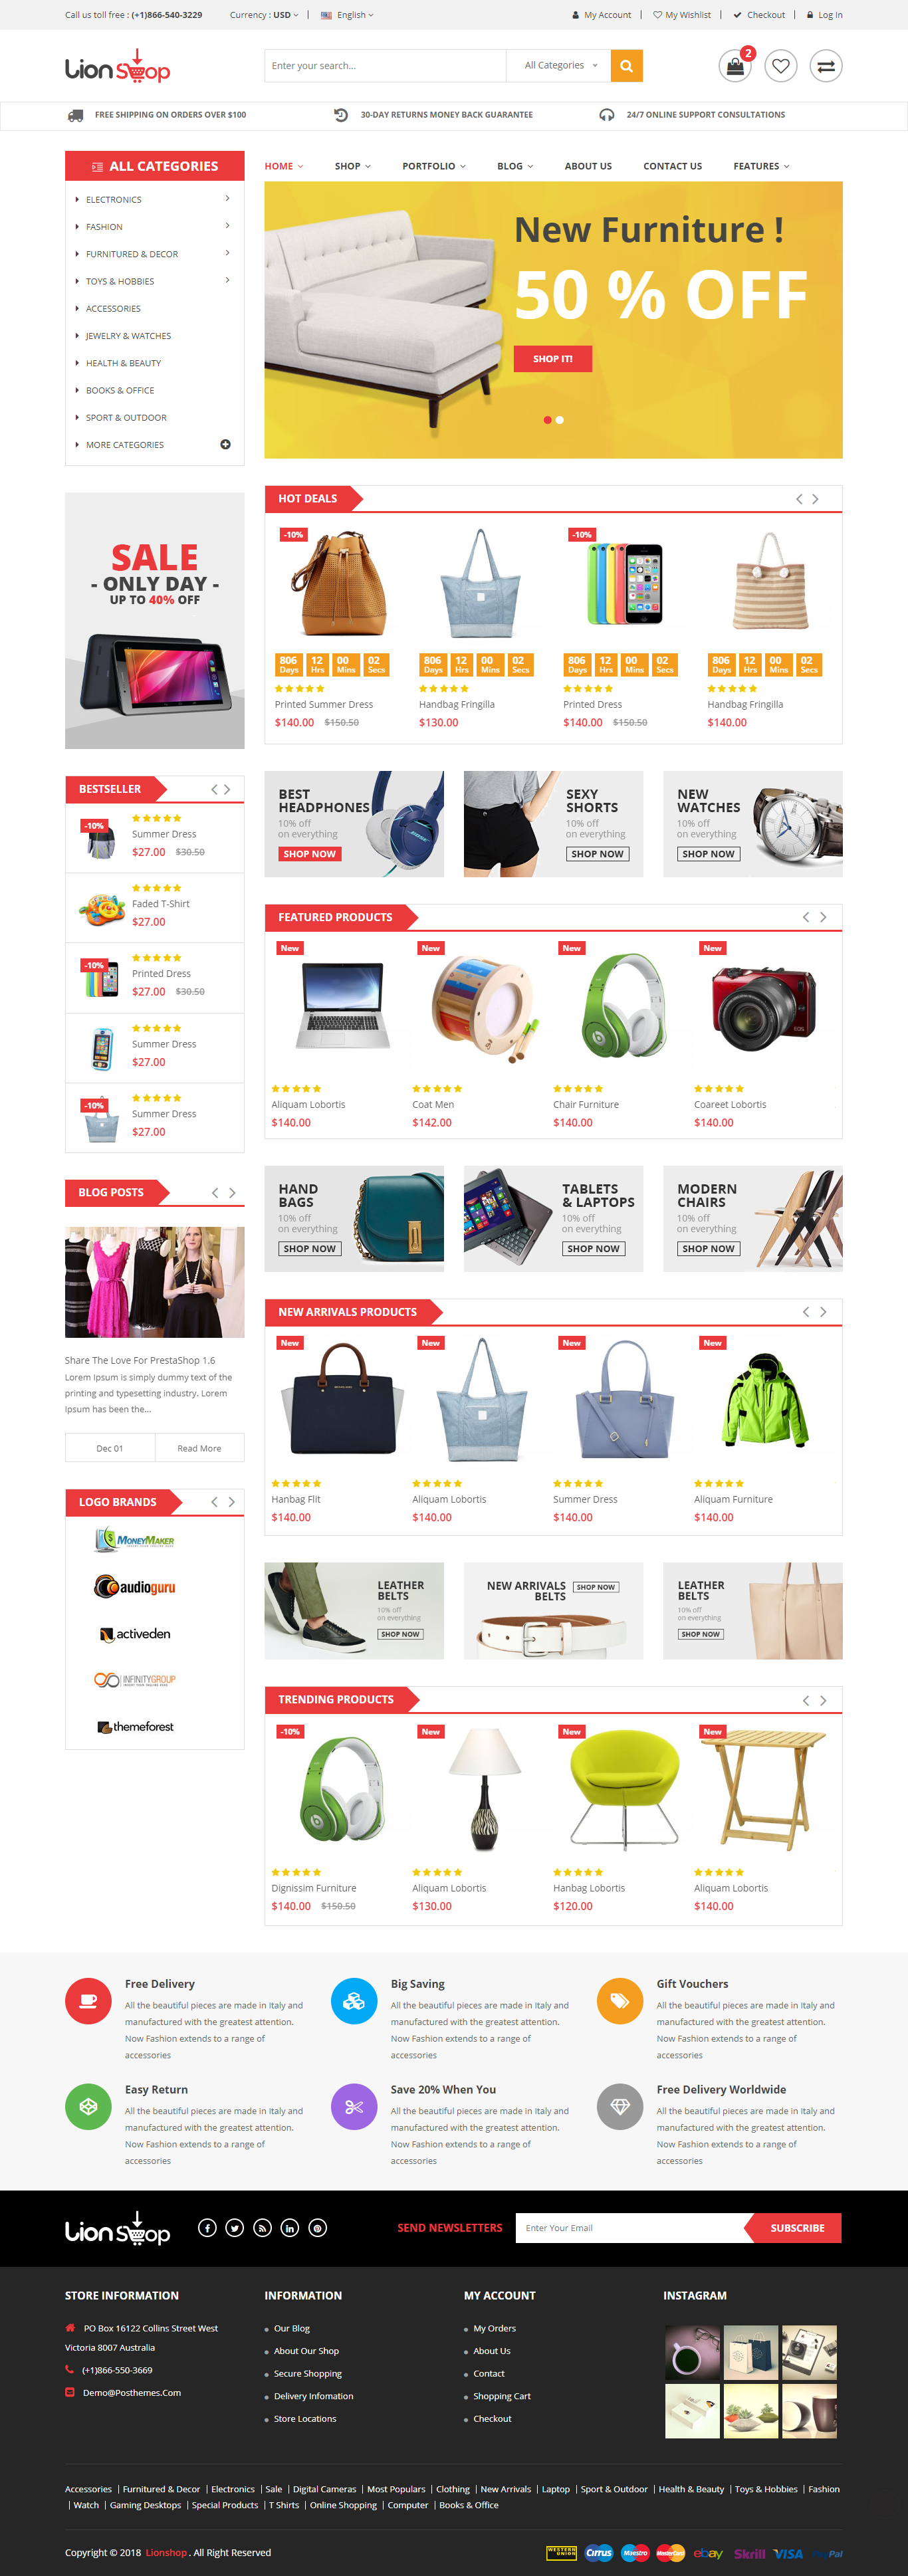 a65b2ee8c Lion – eCommerce Bootstrap 4 Template is a good looking HTML5 eCommerce  website template. The uniquely designed template is responsive to every  digital ...